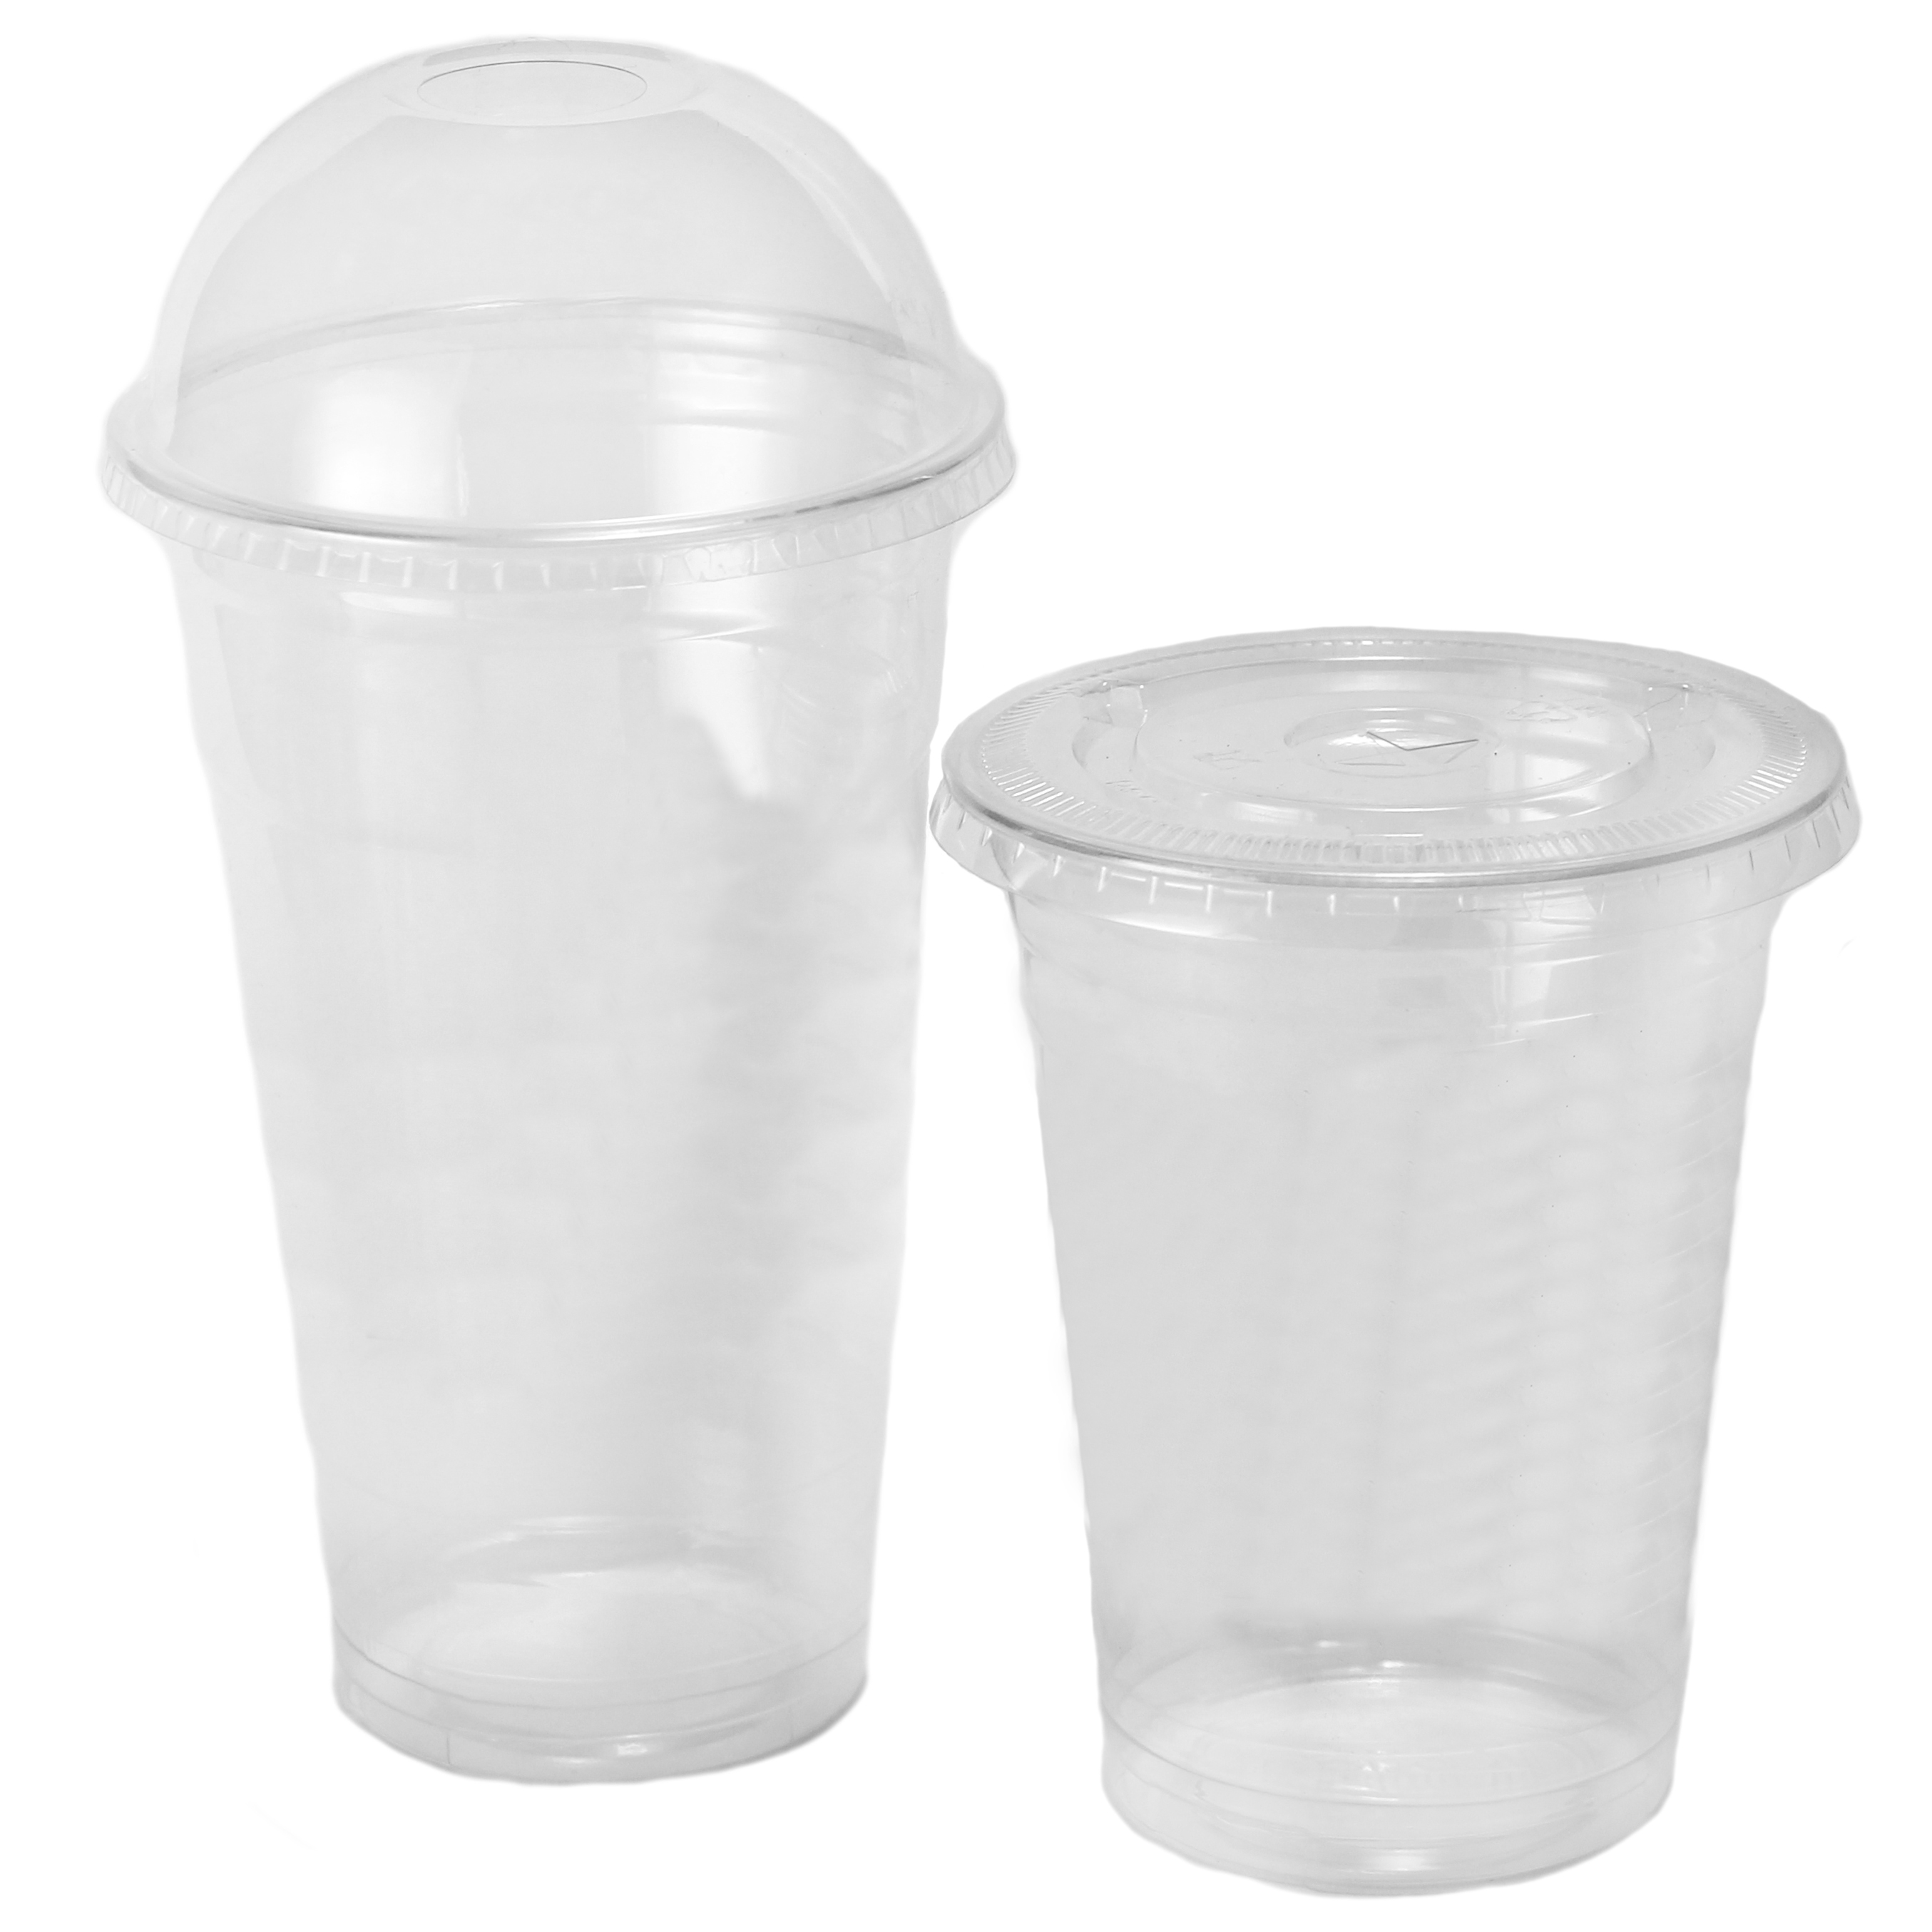 Custom Printed PET Plastic Cold Cups • Sizes: 8, 10, 12, 16, 20, 24 Oz • Minimums: 50 To 100 Cases (1,000 Units/case) • Superior Print Quality To Show Your Logo/message